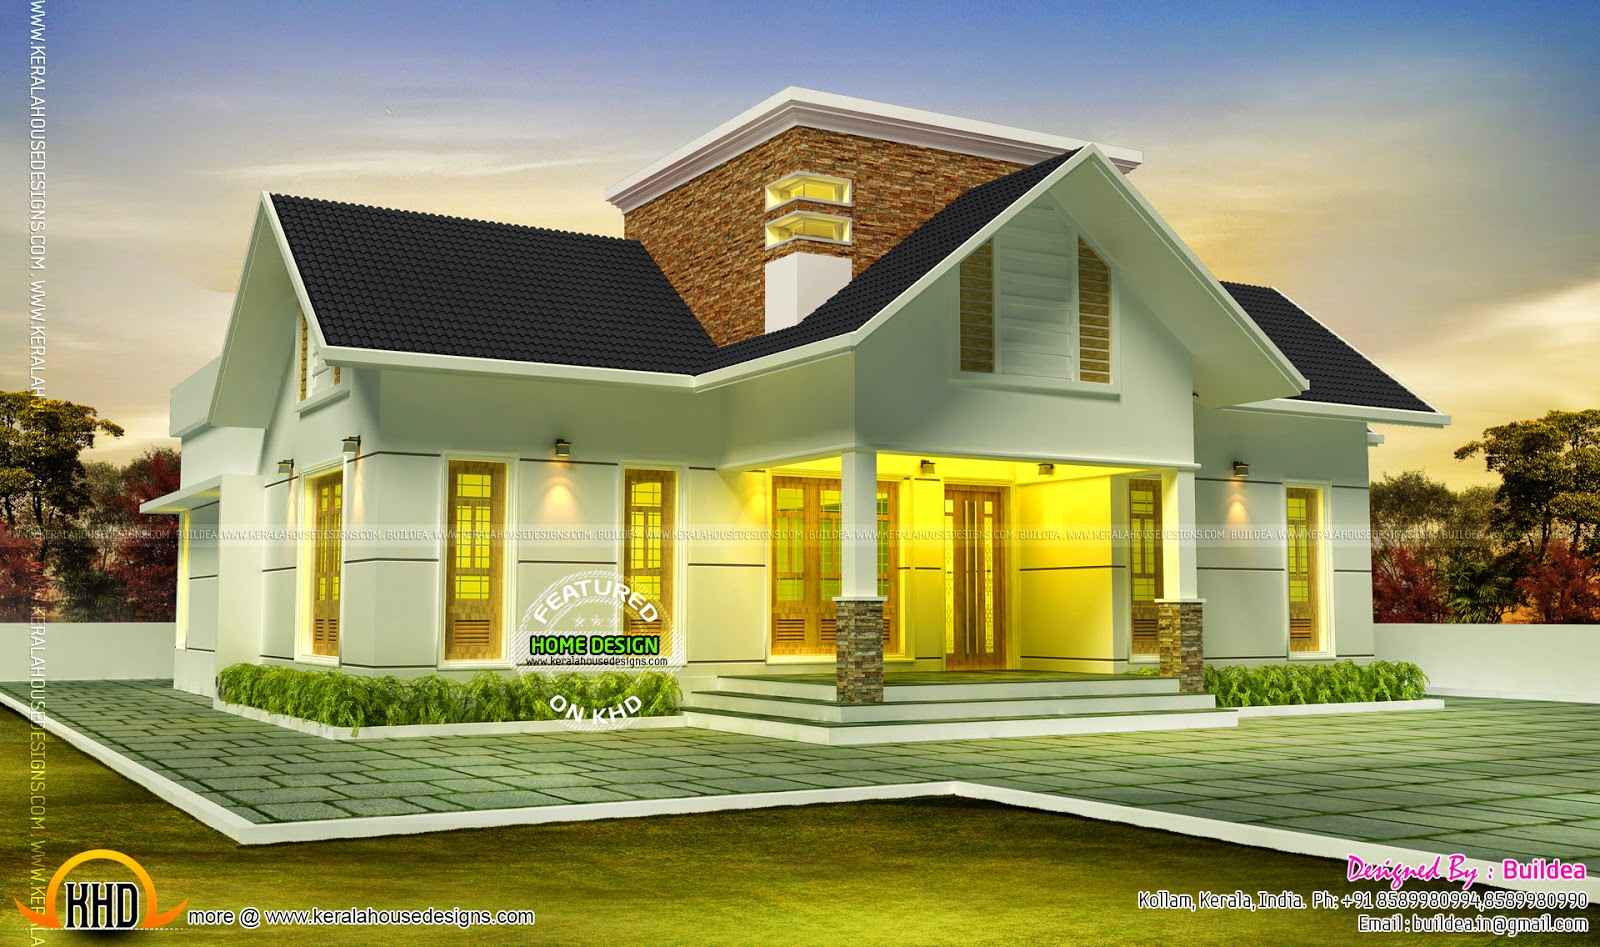 Very beautiful house kerala home design and floor plans for Beautiful houses photos